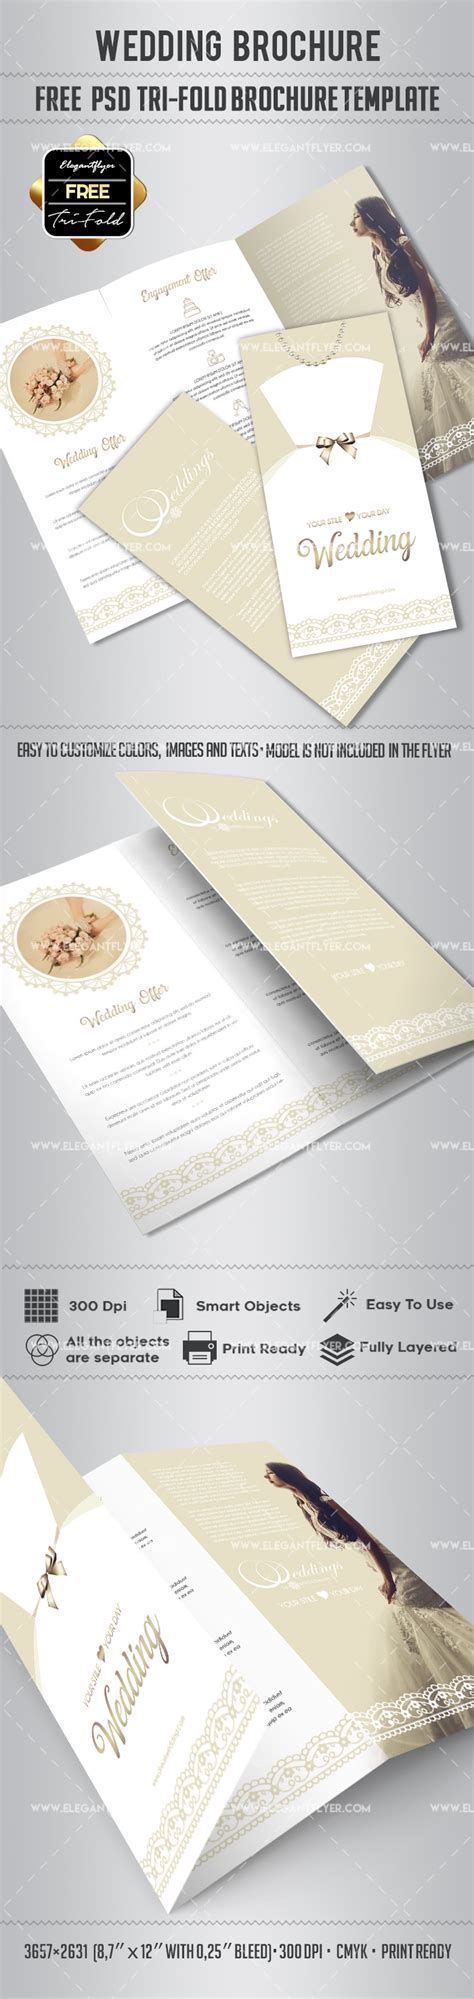 free wedding brochure templates free wedding tri fold psd brochure template by elegantflyer